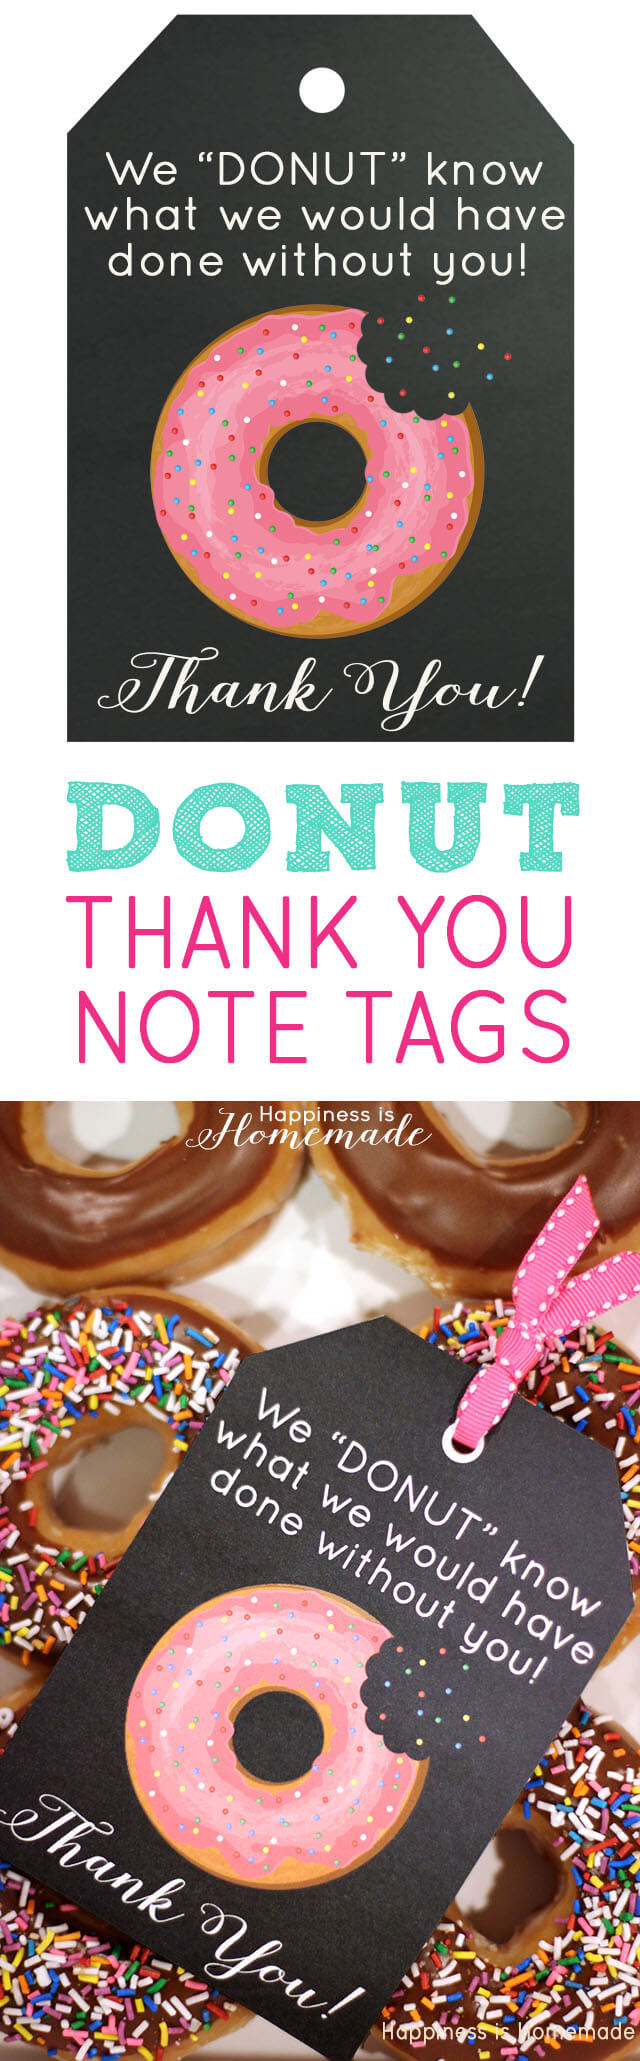 free printable  donut thank you gift tags